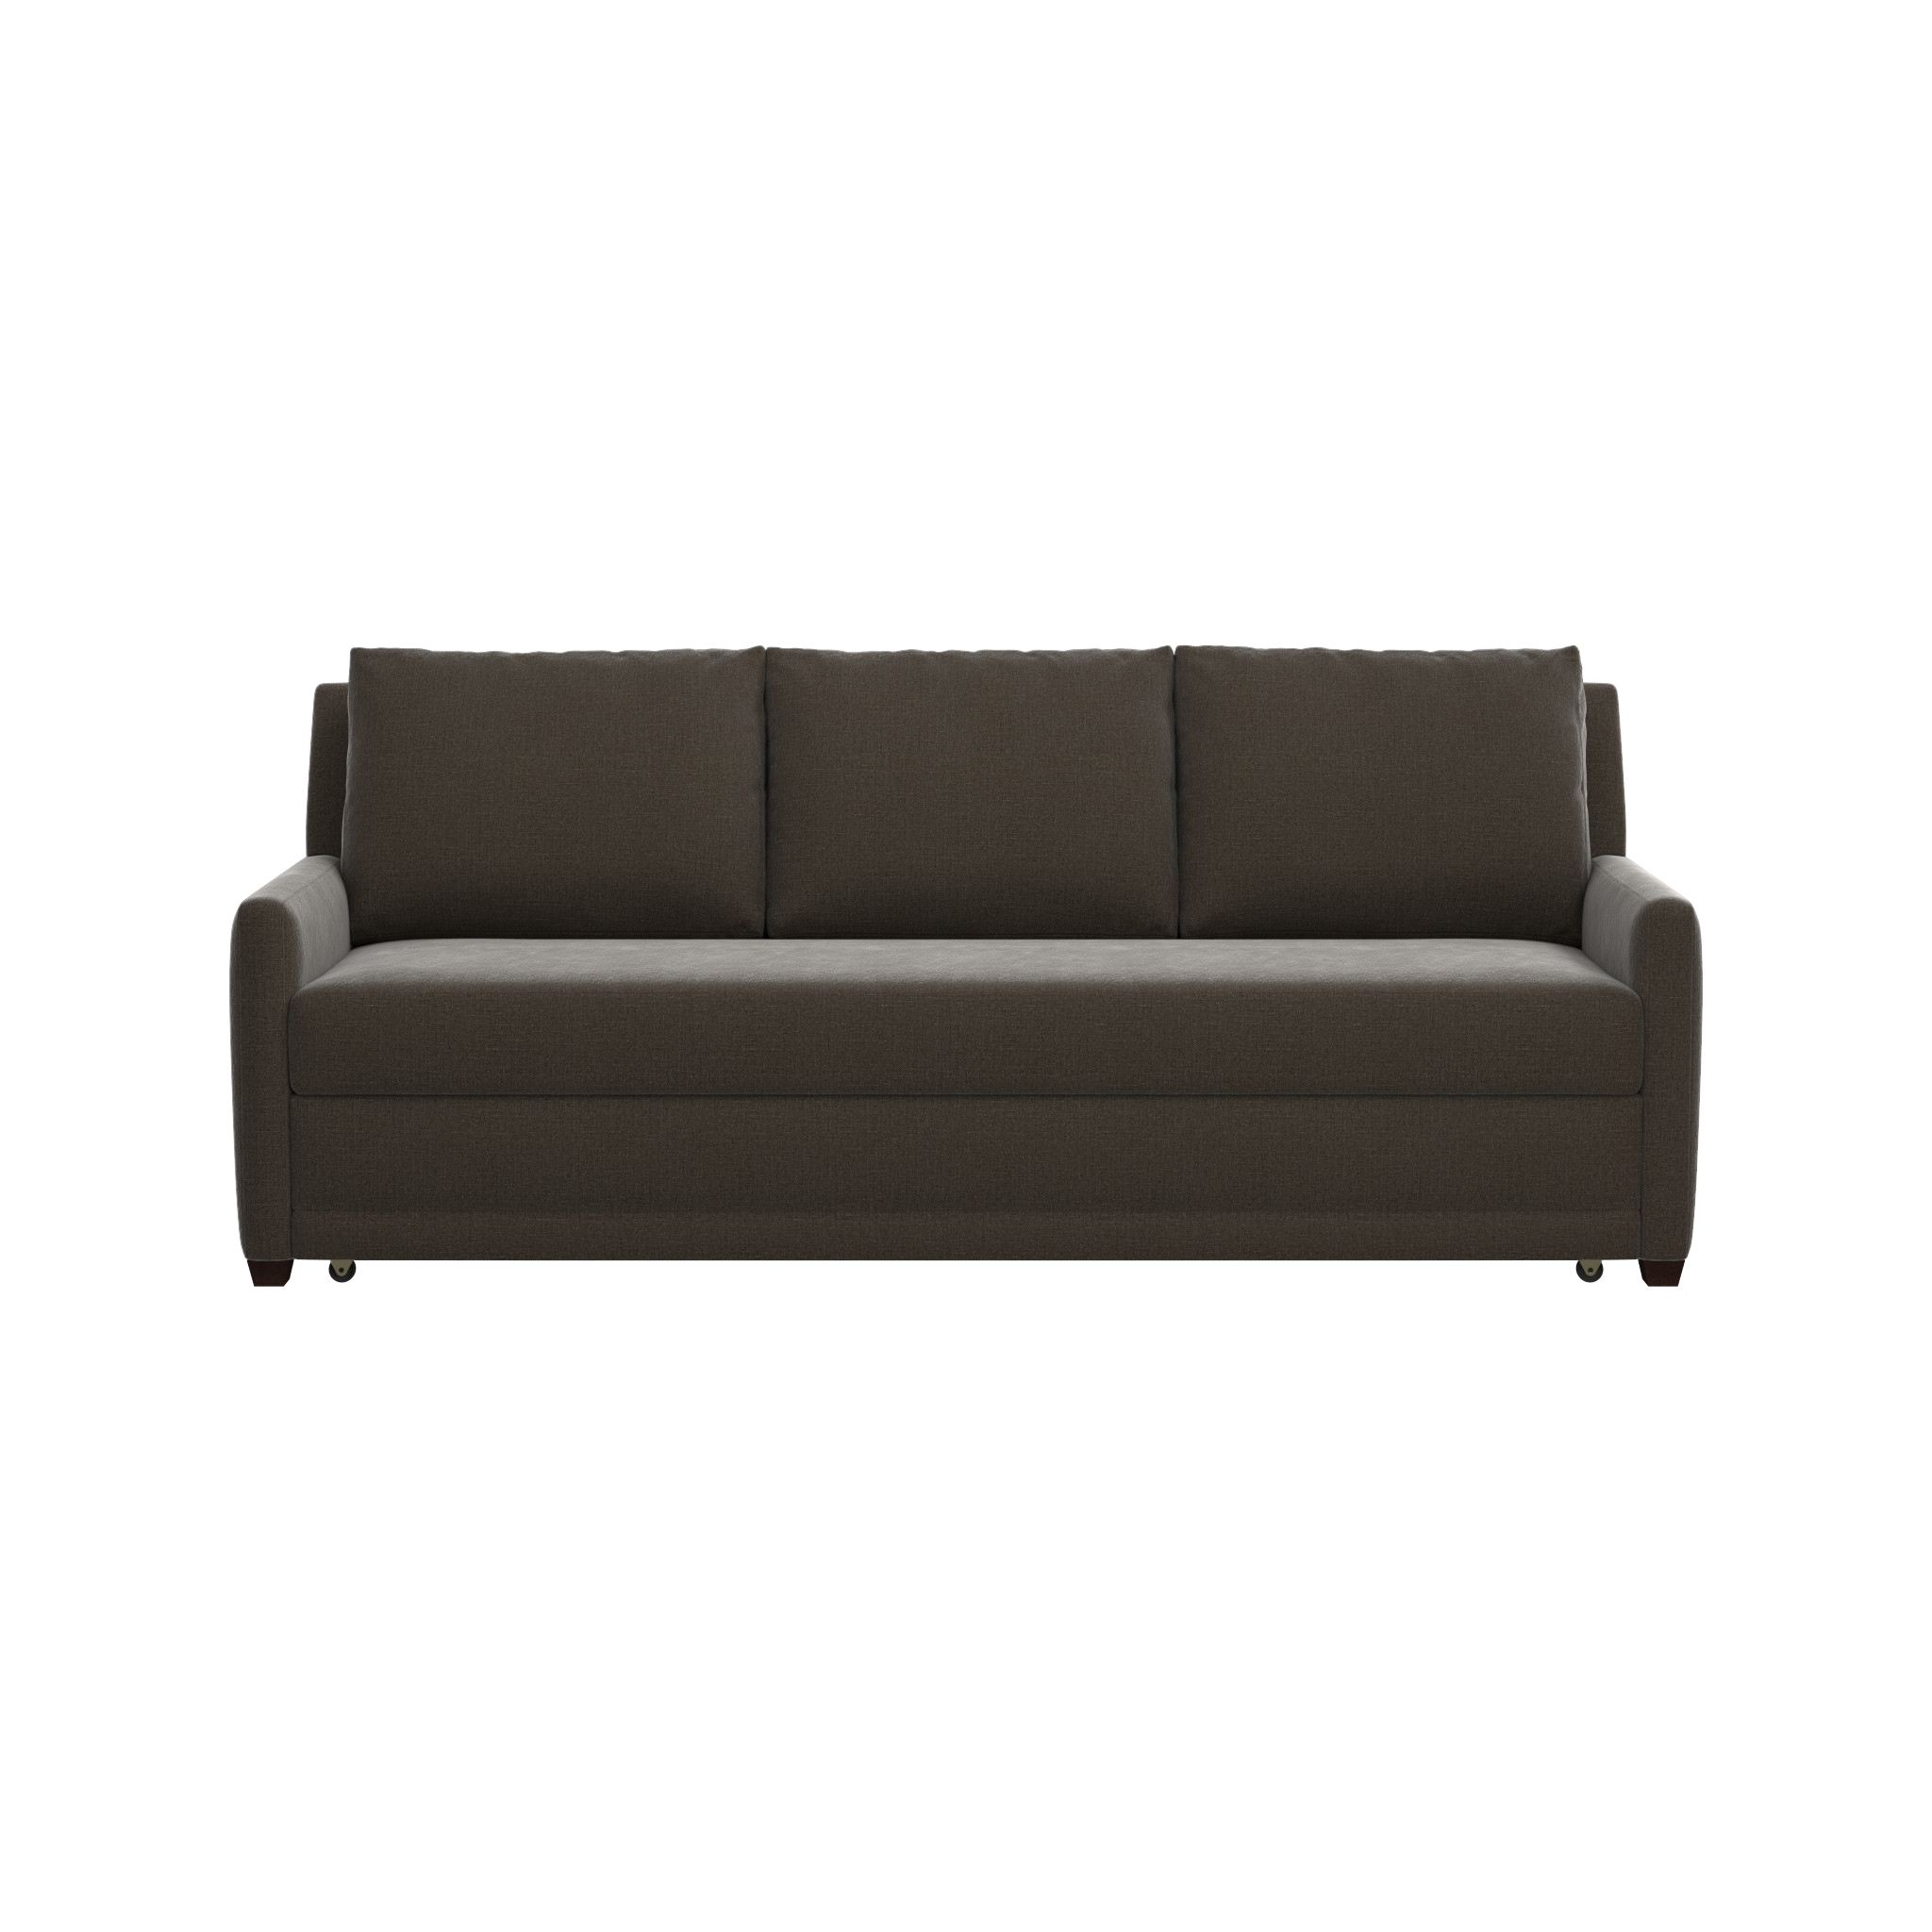 Reston Queen Trundle Sofa | Crate And Barrel With Regard To Crate And Barrel Sofa Sleepers (Image 16 of 20)